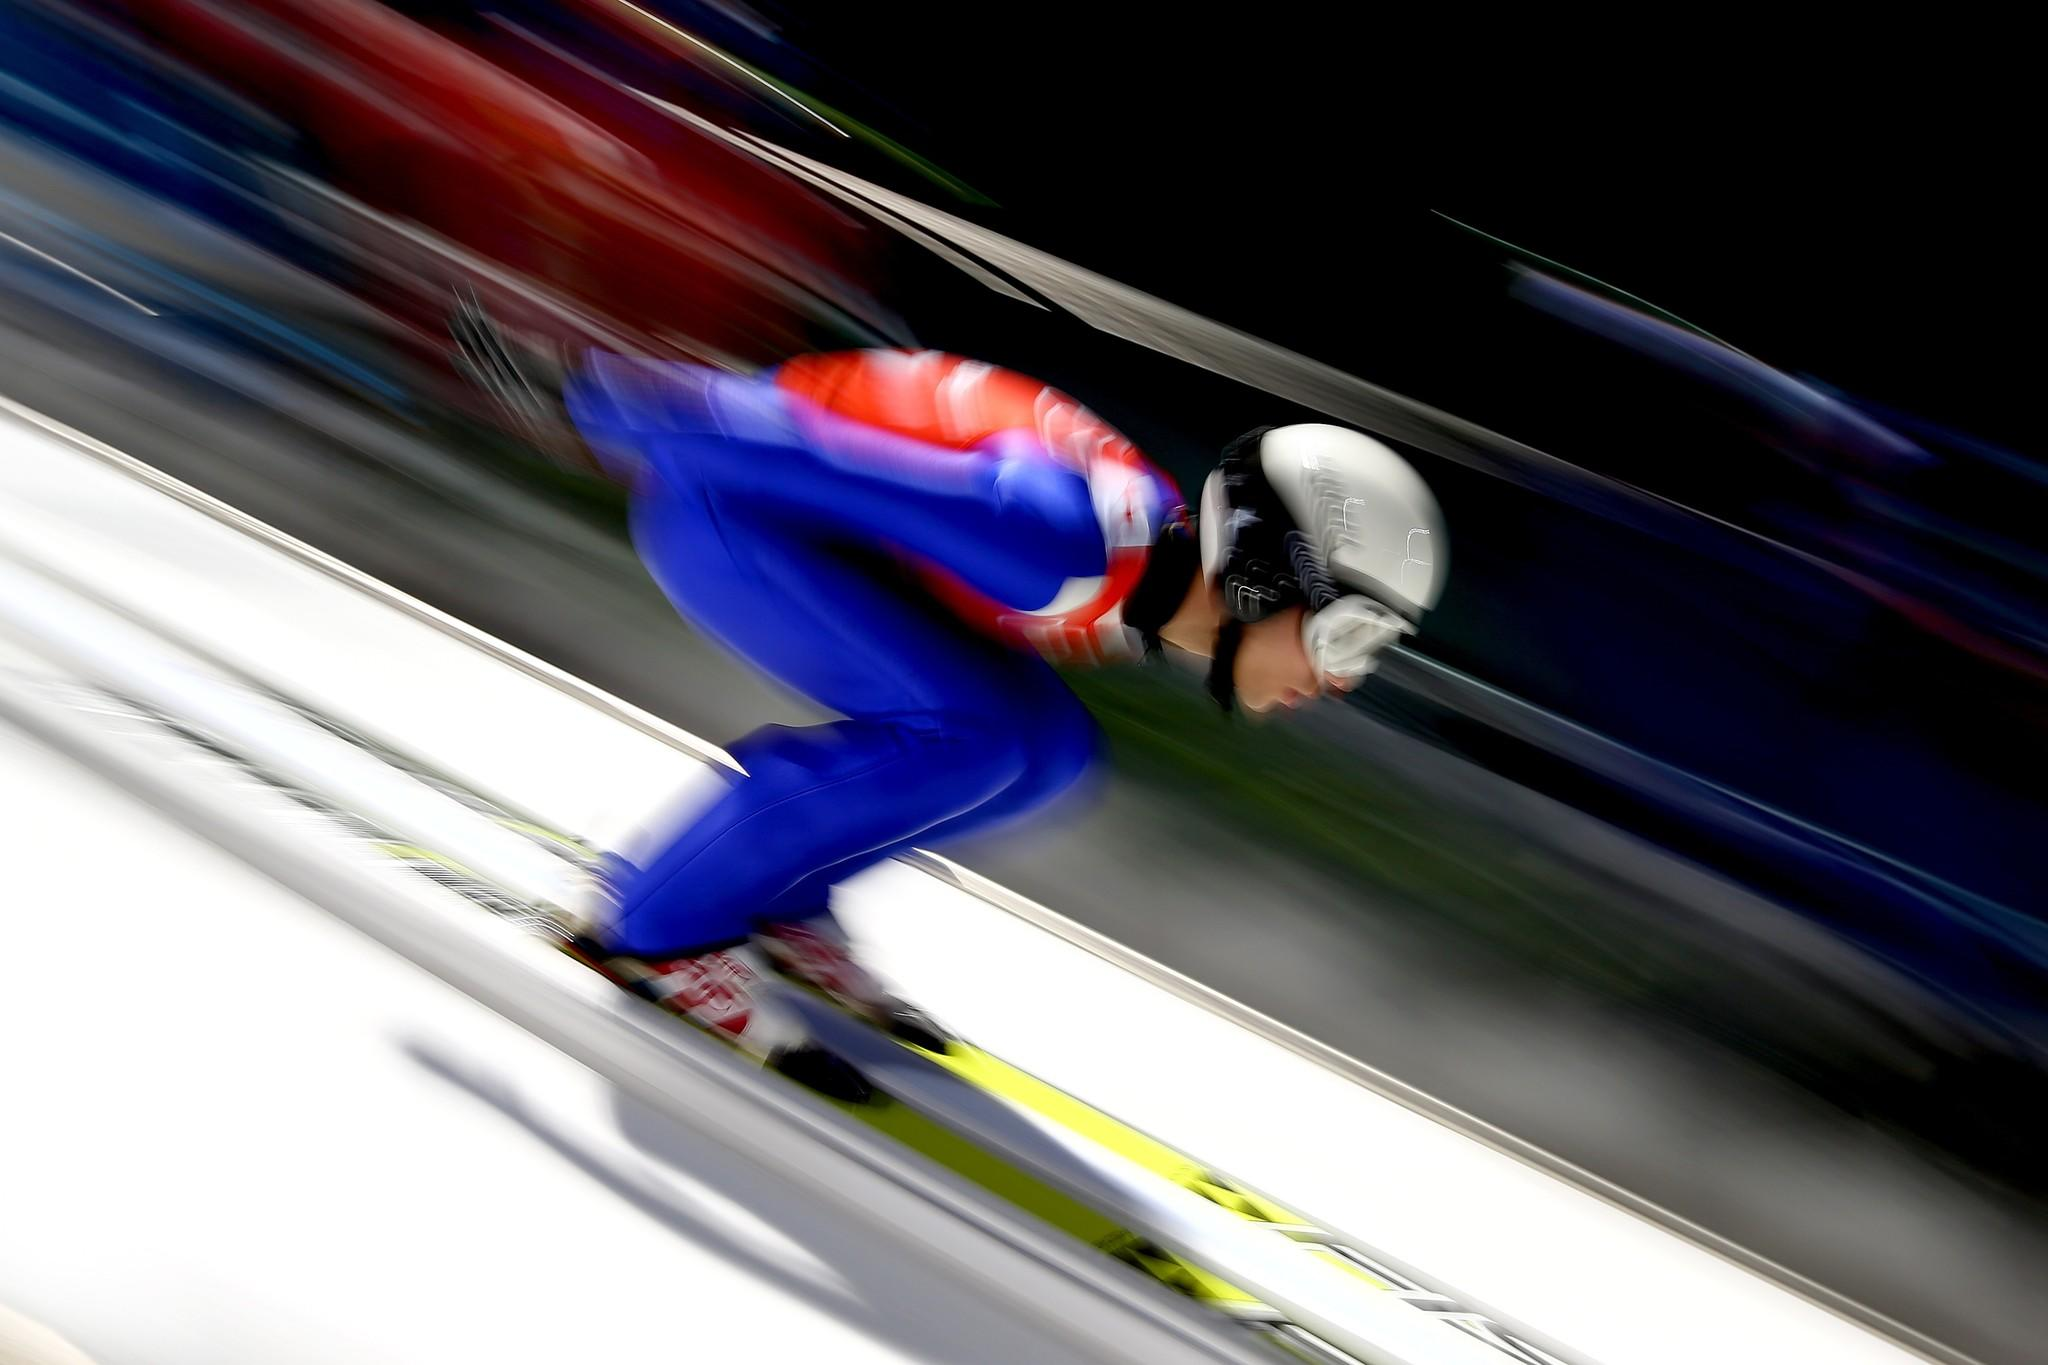 Davide Bresadola of Italy takes part in the Men's Normal Hill Individual Ski Jumping training ahead of the Sochi 2014 Winter Olympics.